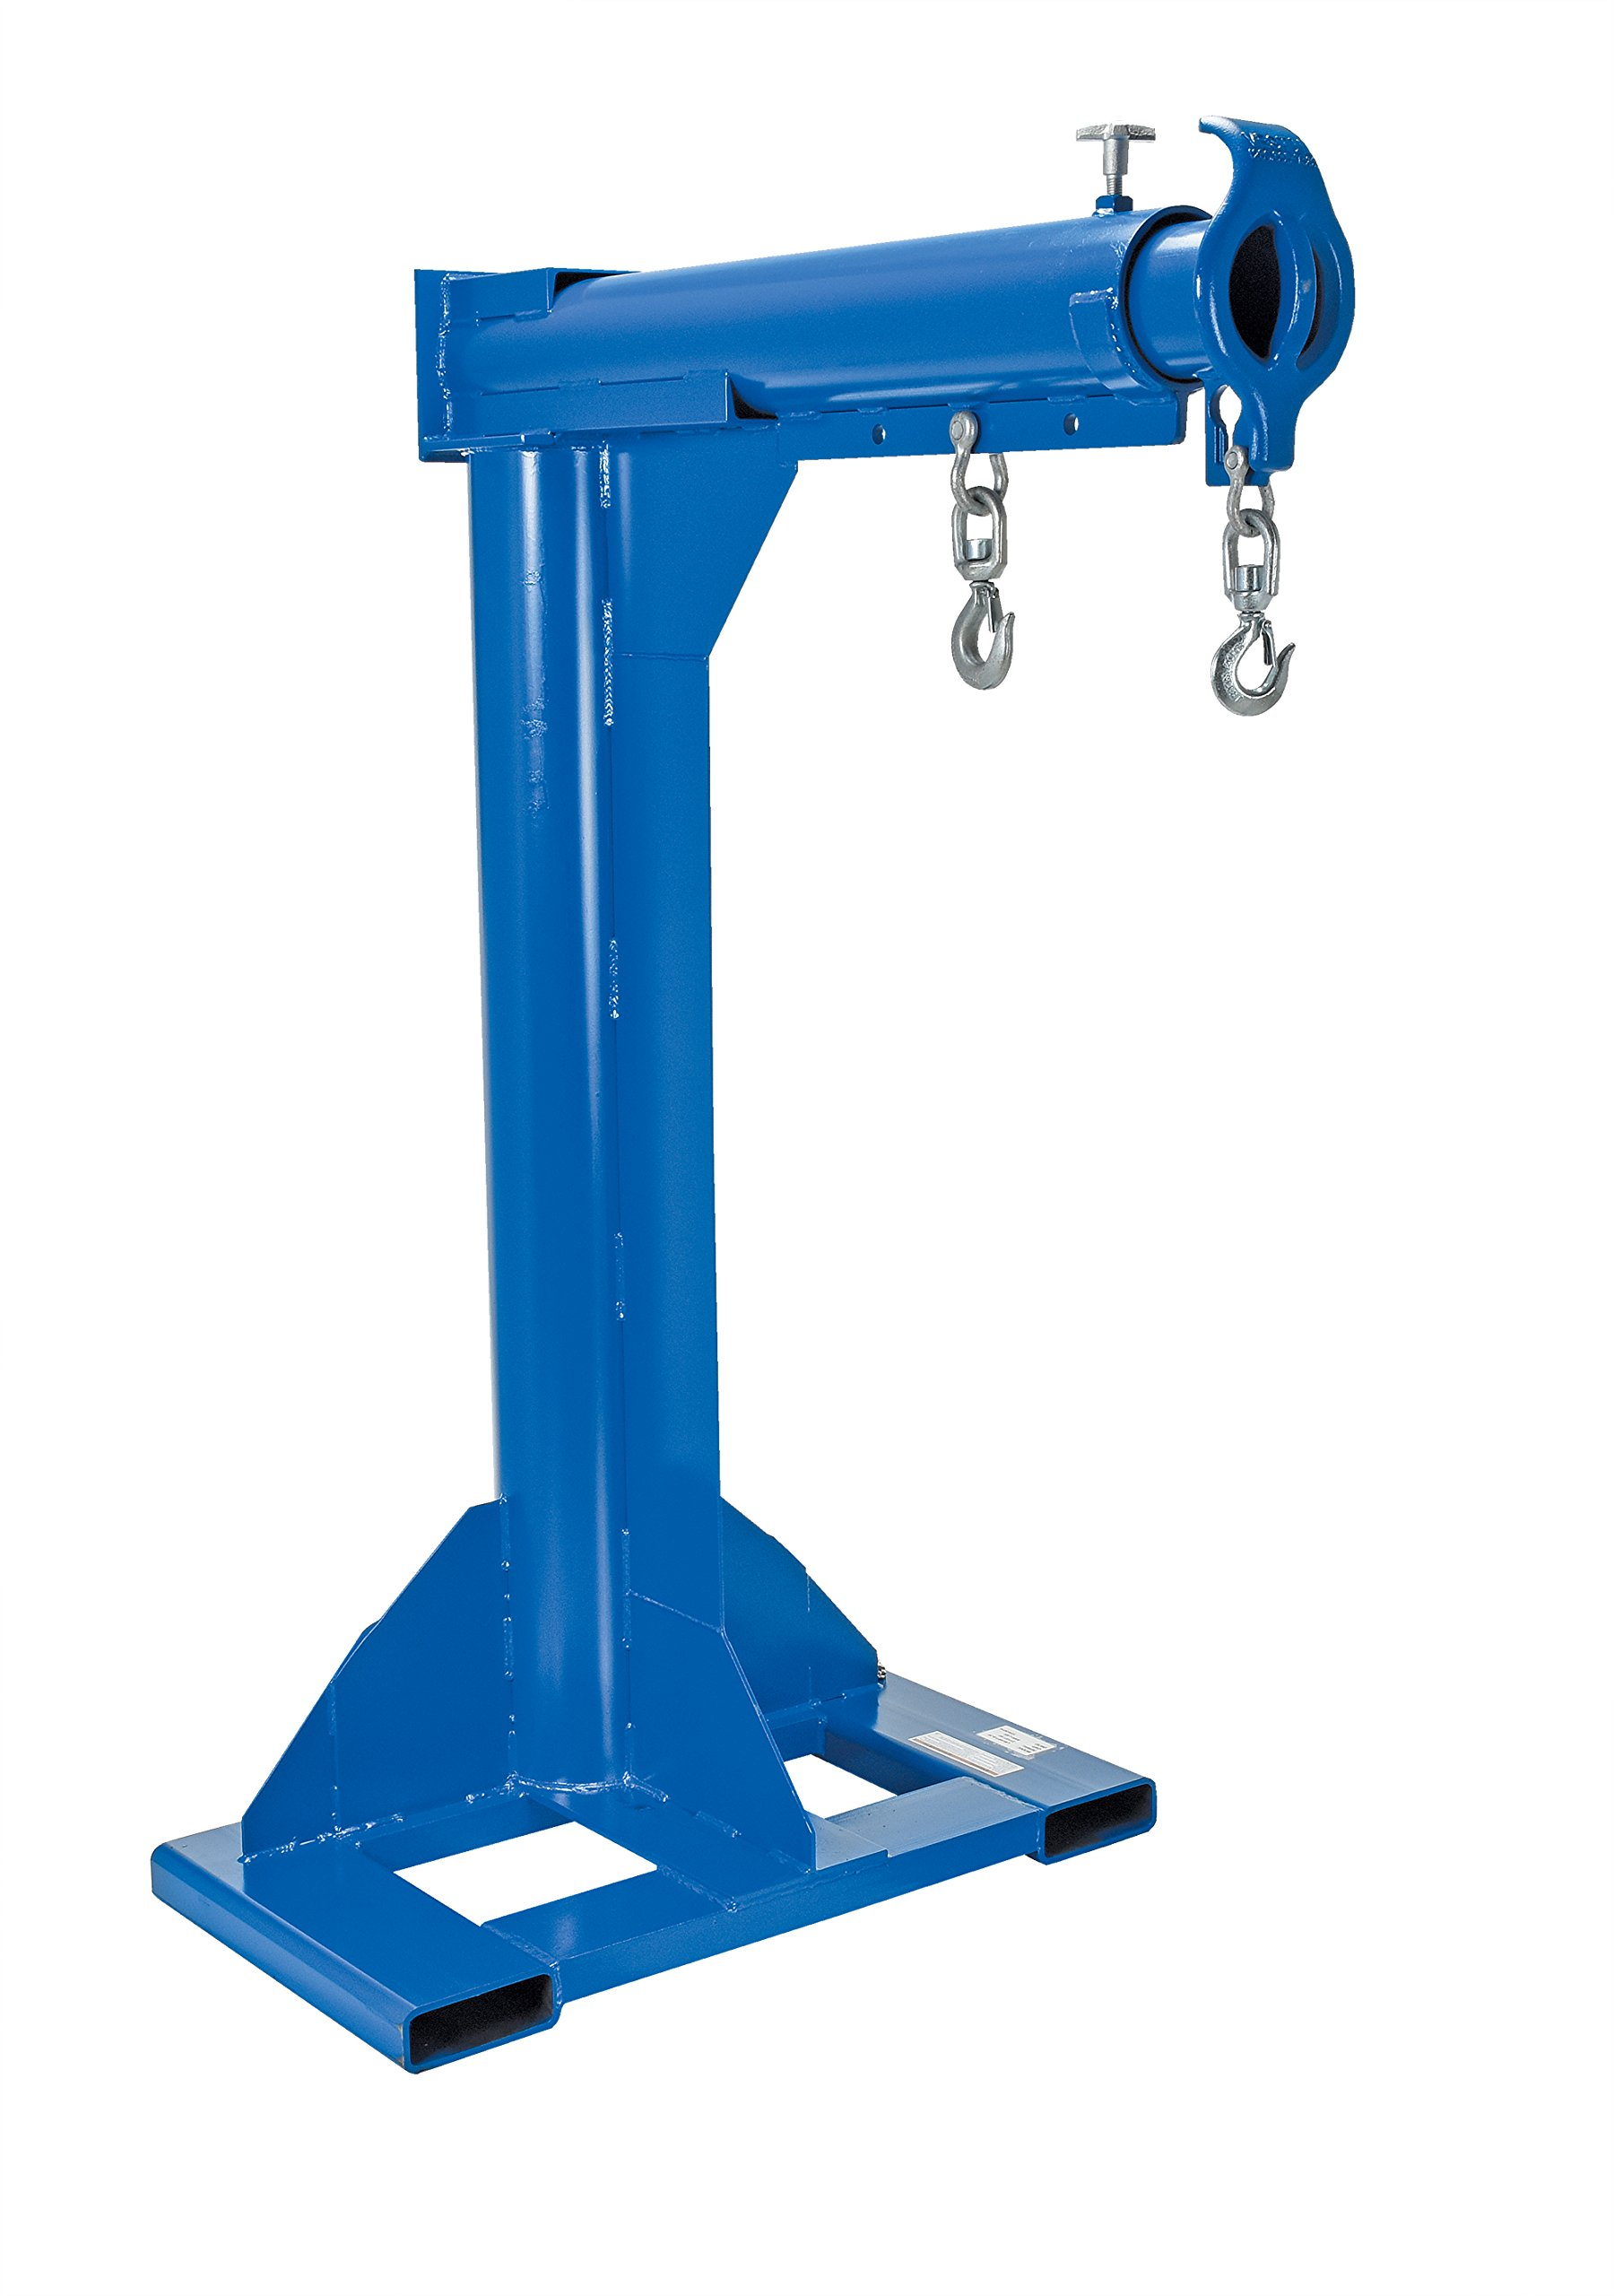 Vestil LM-HRT-4-30 Steel Telescoping High Rise Boom, 4000 lb Capacity, 30'' Fork Pocket Center, Overall LxWxH (in.) 38 x 54.875 x 79.8125, Overall Extended Length (in.) 92-5/8, Minimum Hook Point (in.) 30, Maximum Hook Point (in.) 90, Blue